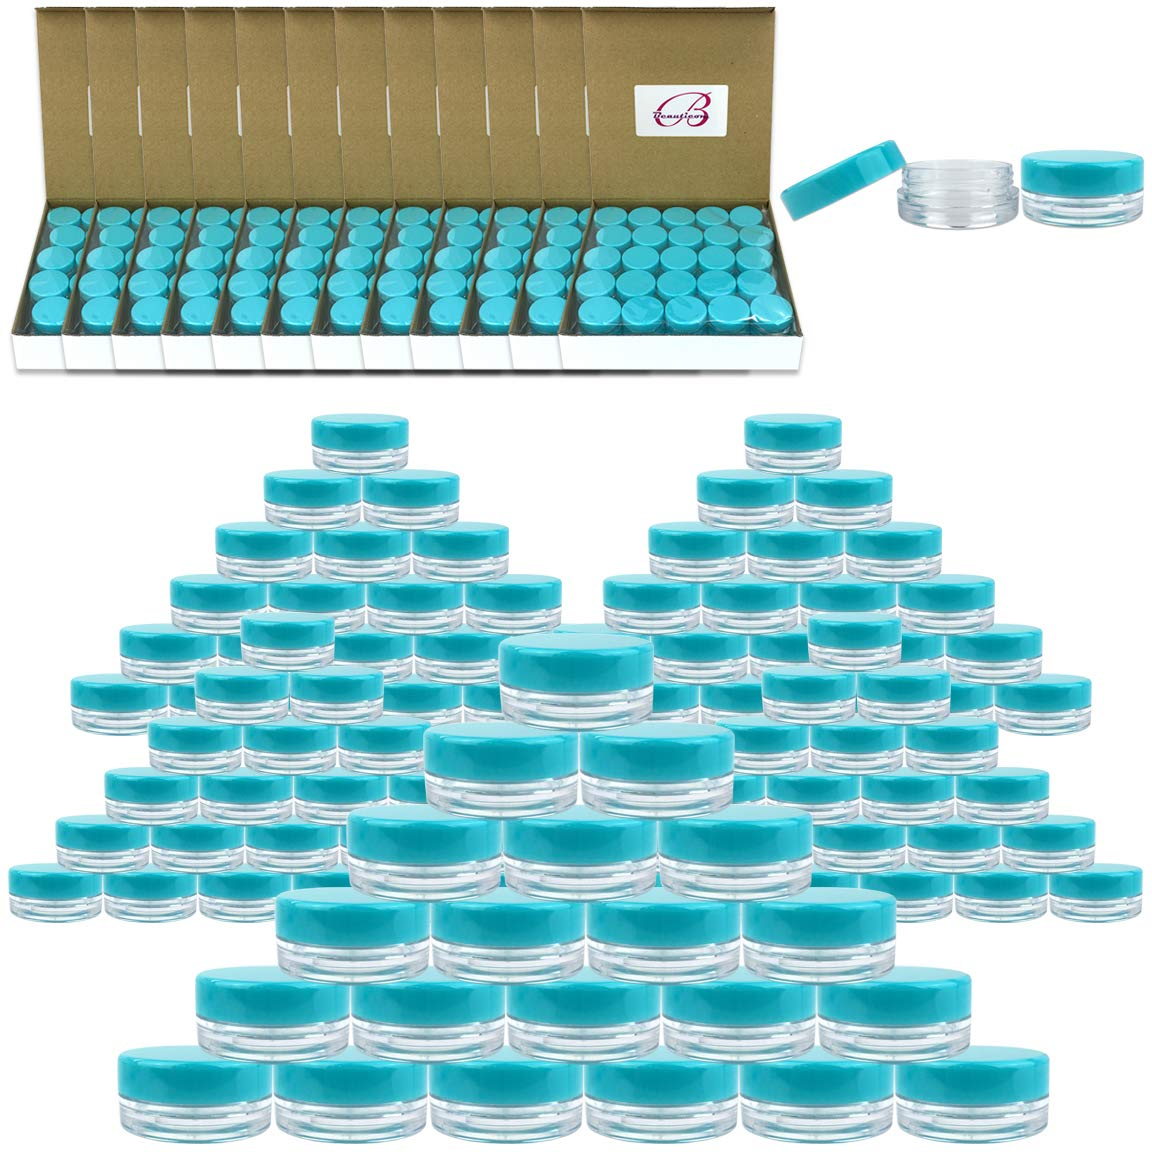 (Quantity: 2000 Pieces) Beauticom 3G/3ML Round Clear Jars with TEAL Sky Blue Lids for Scrubs, Oils, Toner, Salves, Creams, Lotions, Makeup Samples, Lip Balms - BPA Free by Beauticom